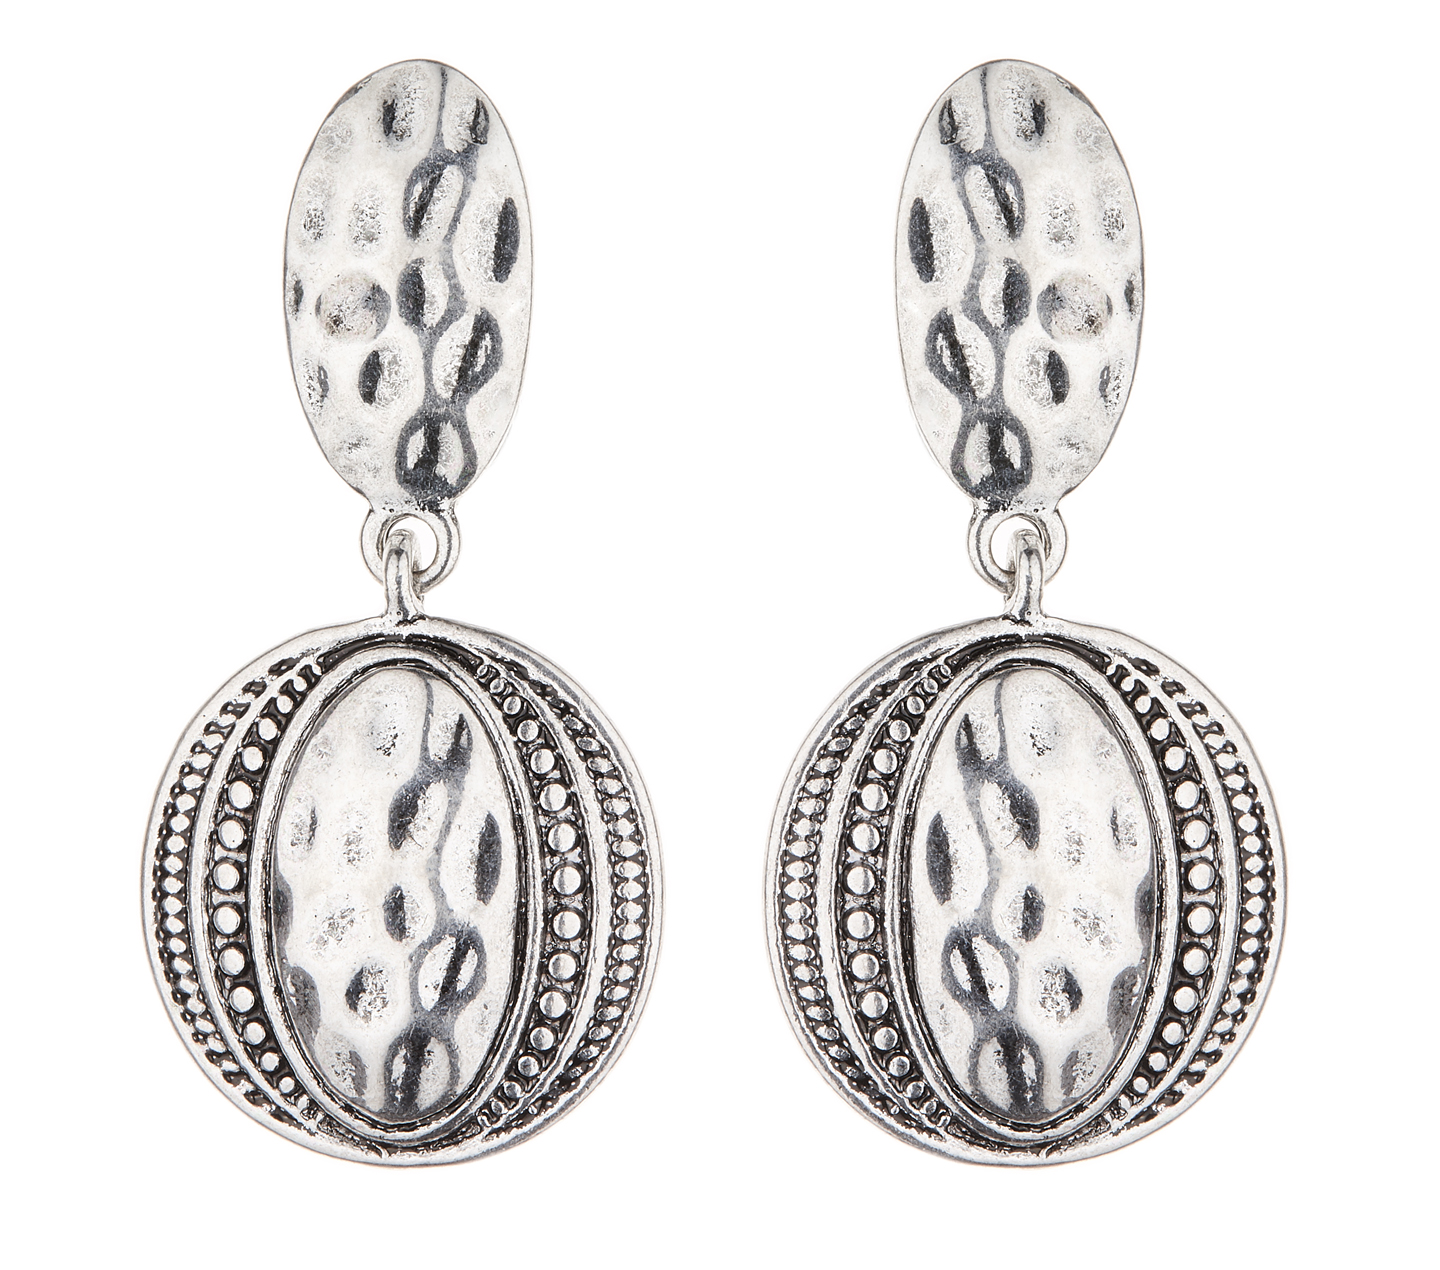 Clip On Earrings - Brasen S - antique silver Aztec design dangle earring